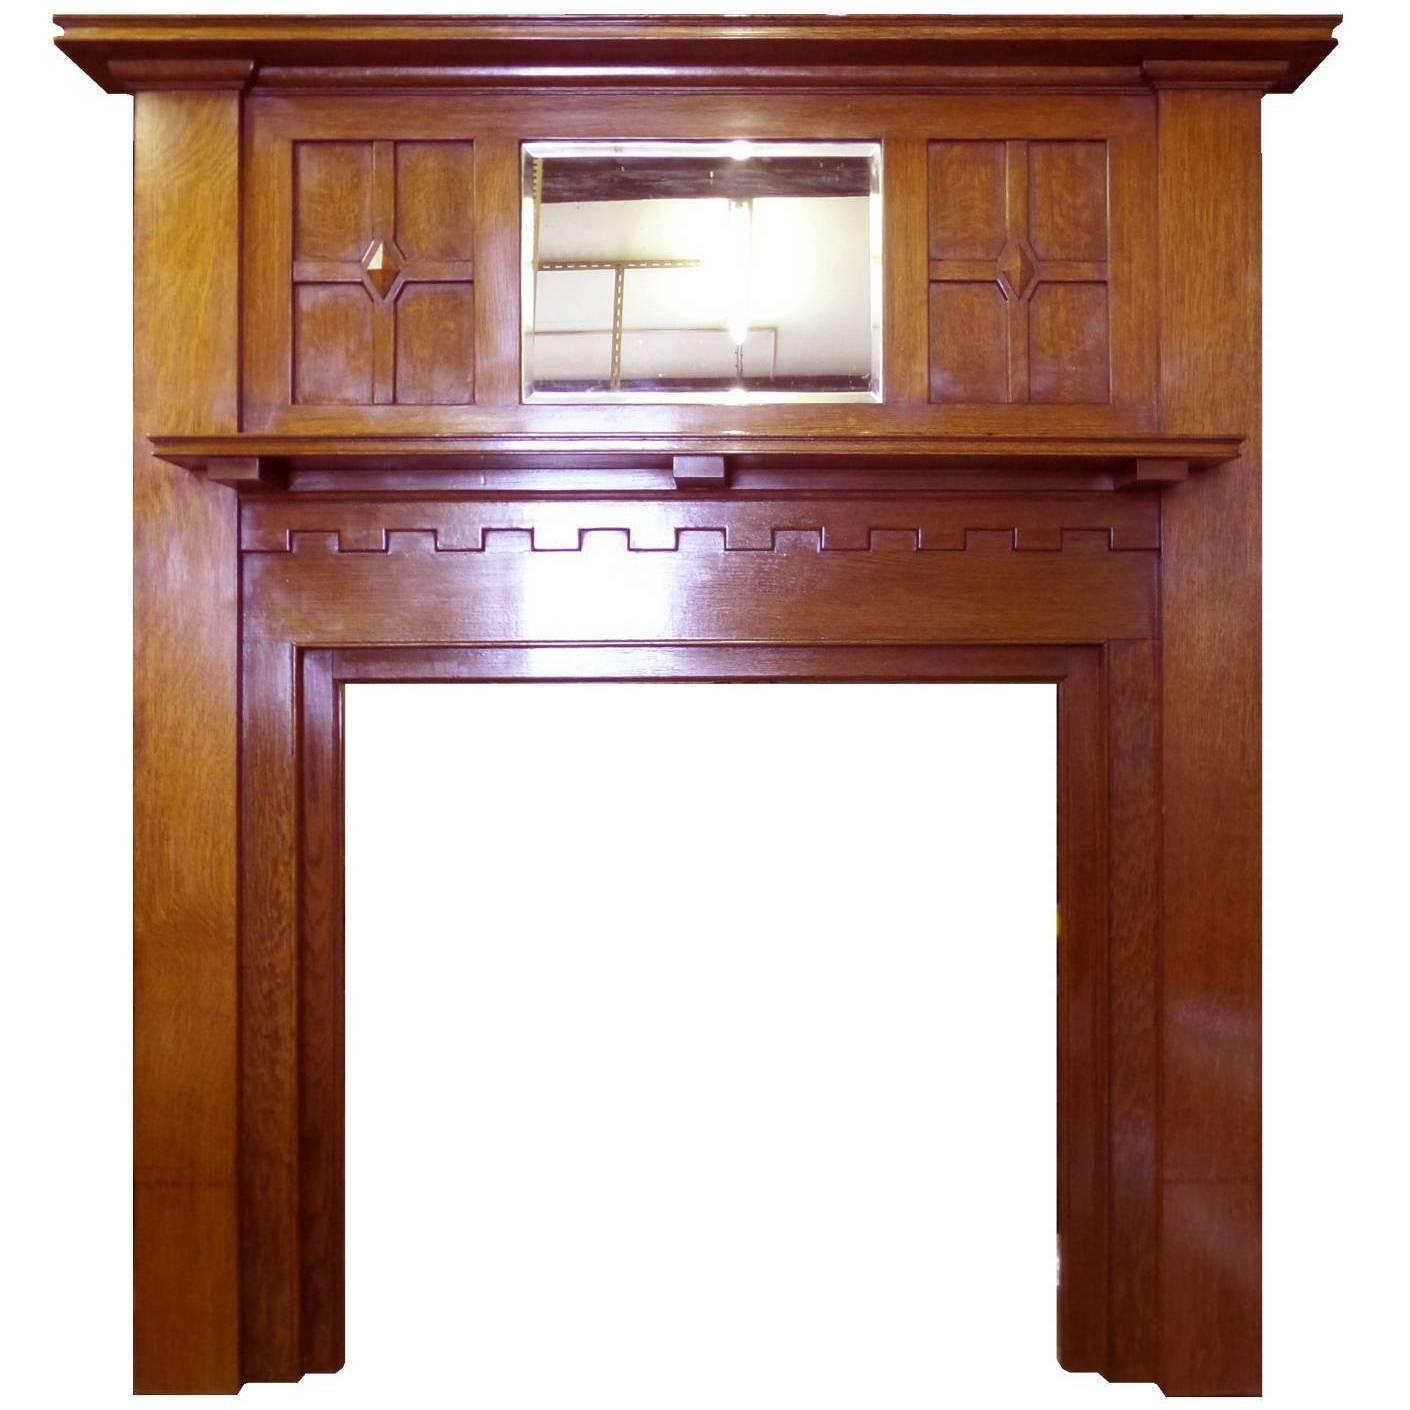 Arts and crafts mirrors - Antique Edwardian Arts And Crafts Oak Mantel Fireplace Surround And Mirror